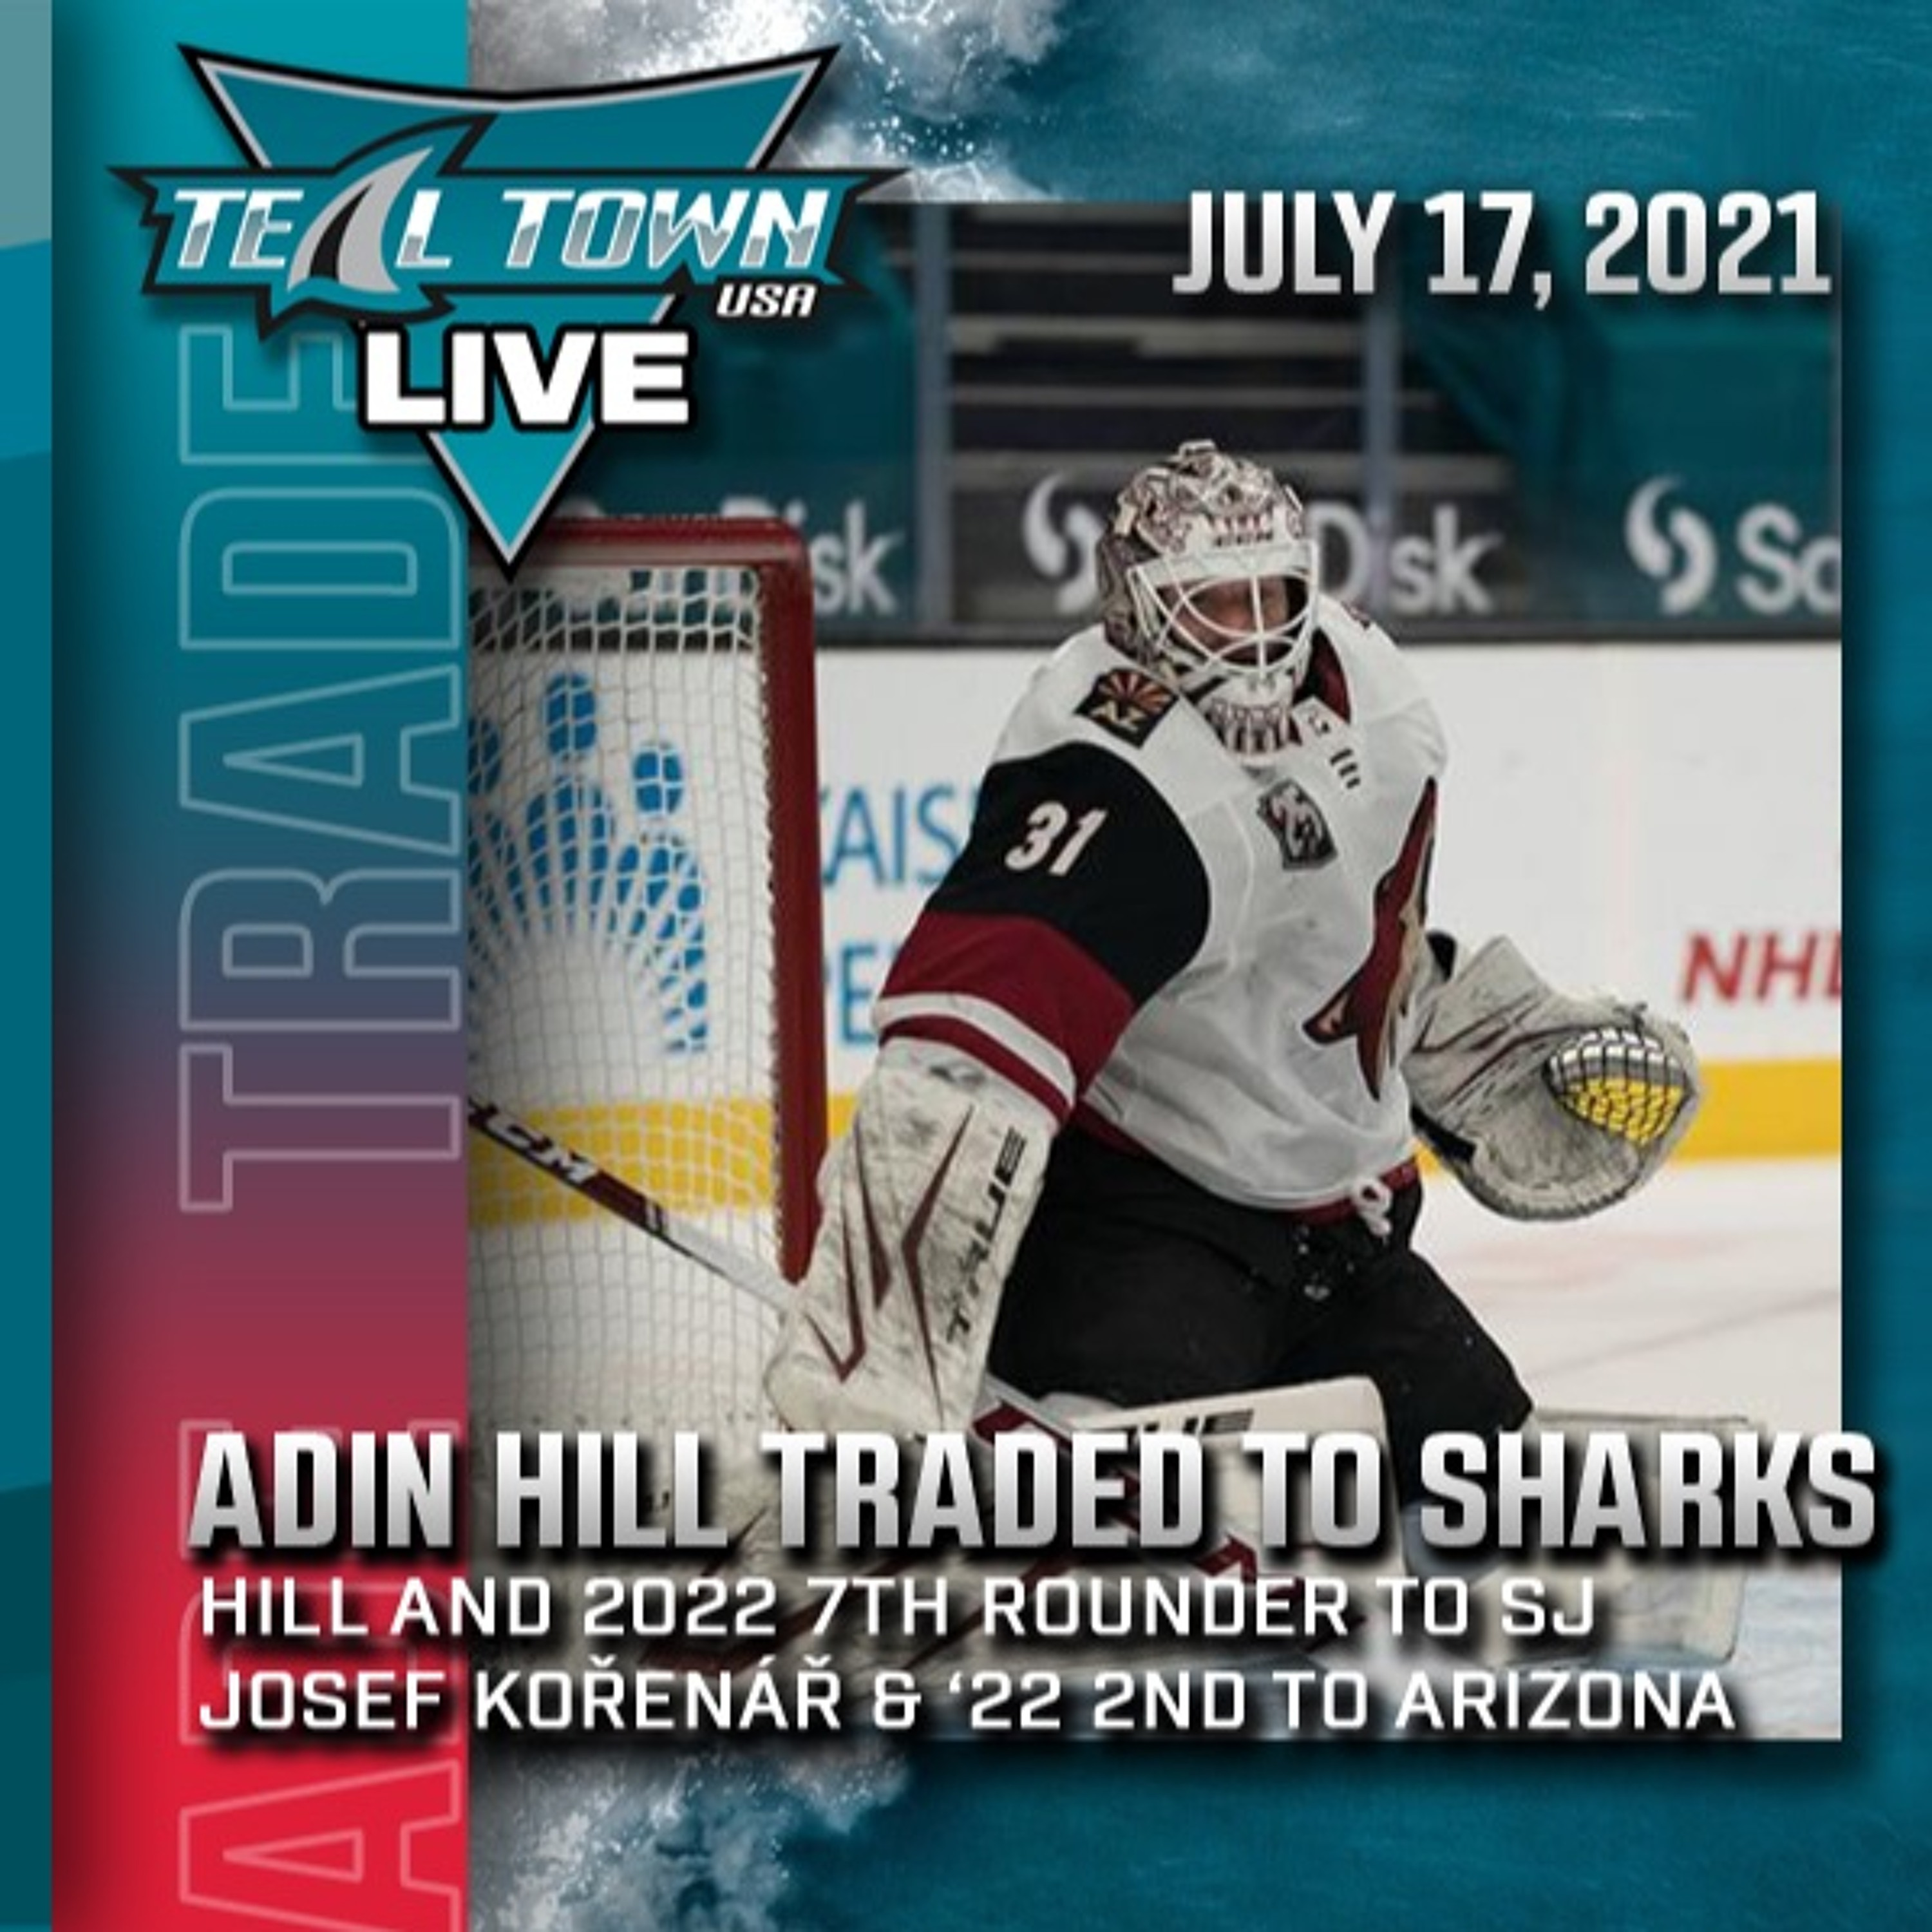 Sharks Acquire Adin Hill from Coyotes - 7-17-2021 - Teal Town USA Live